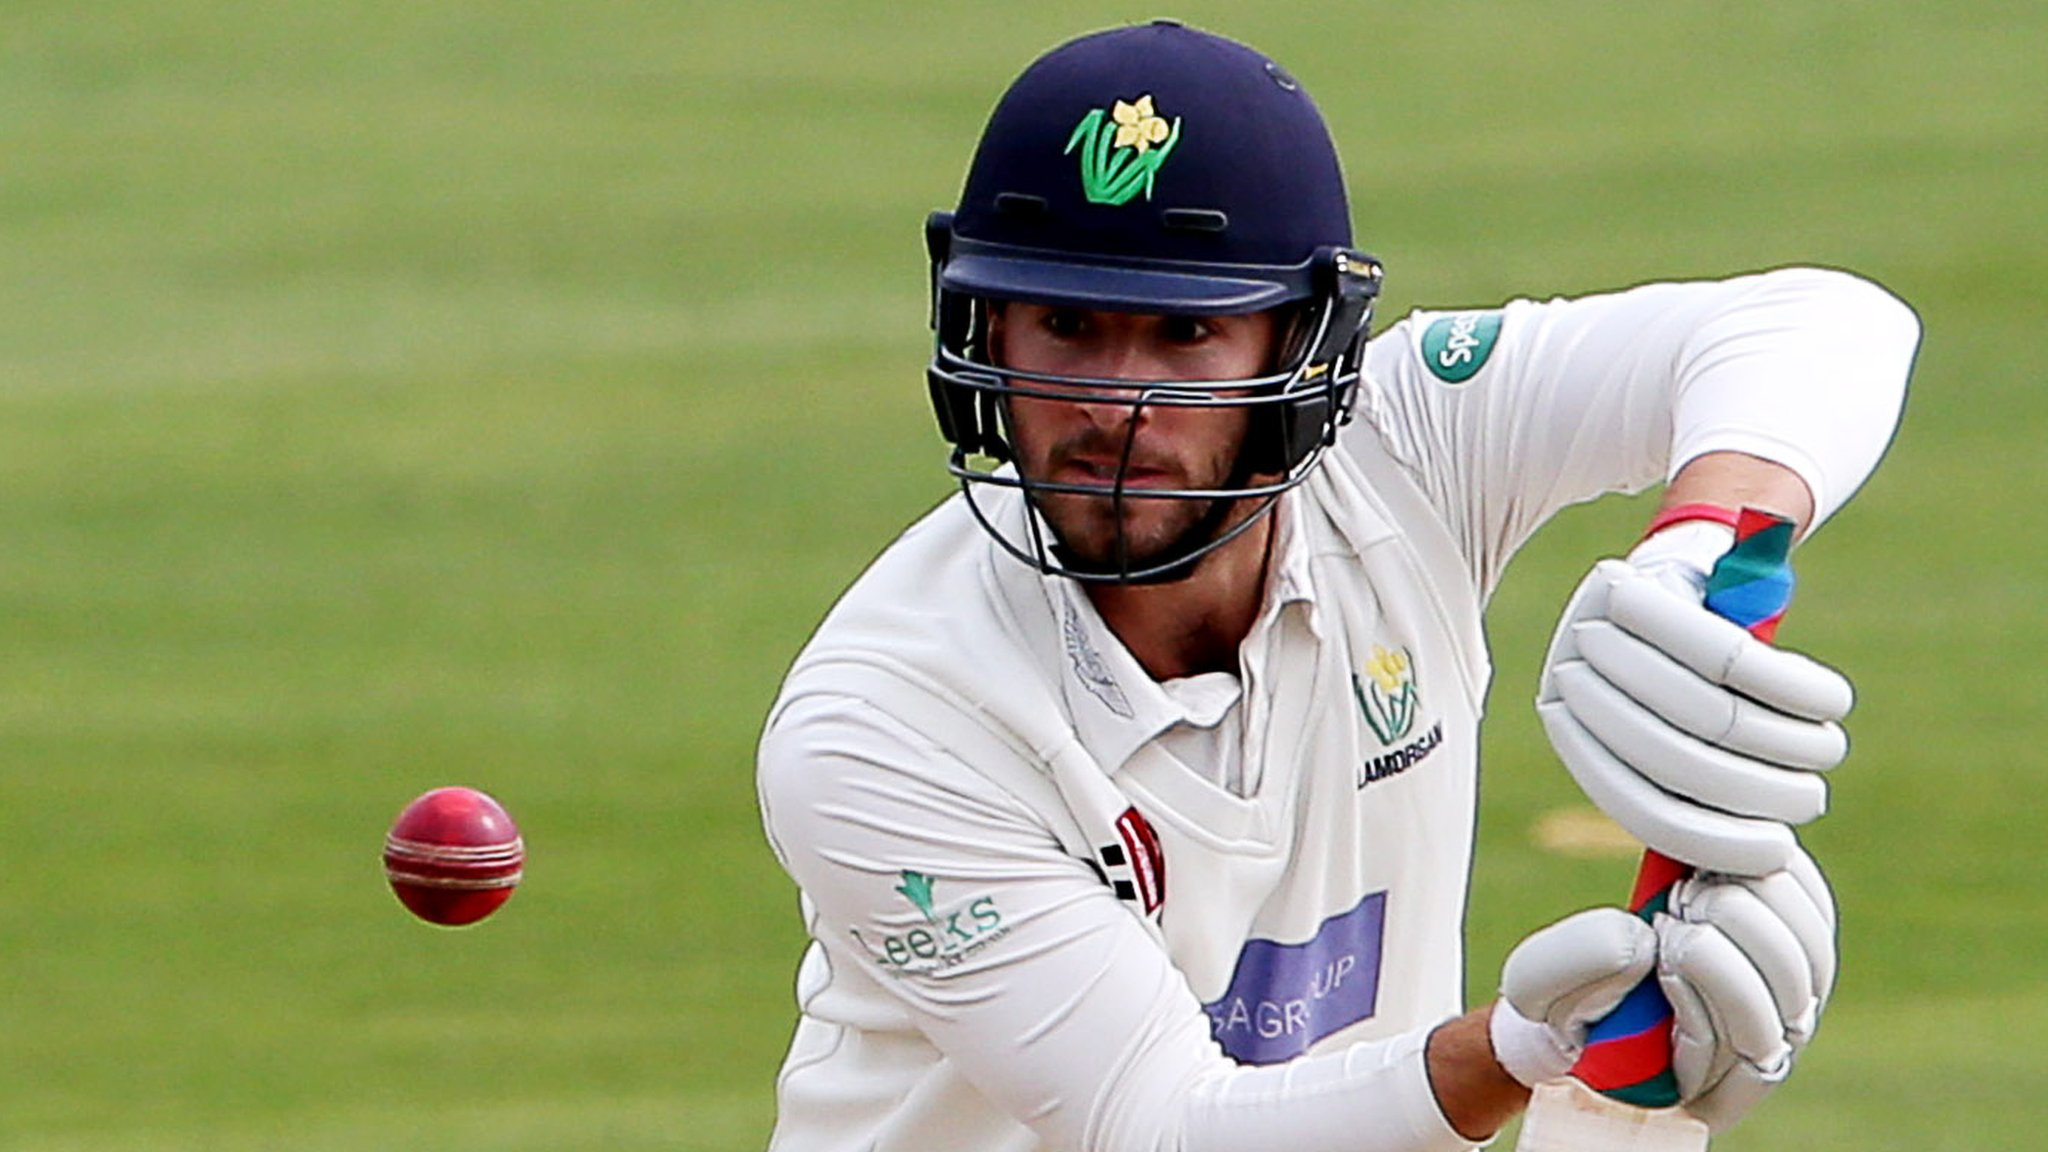 Glamorgan: Quartet sign new contracts with Welsh county